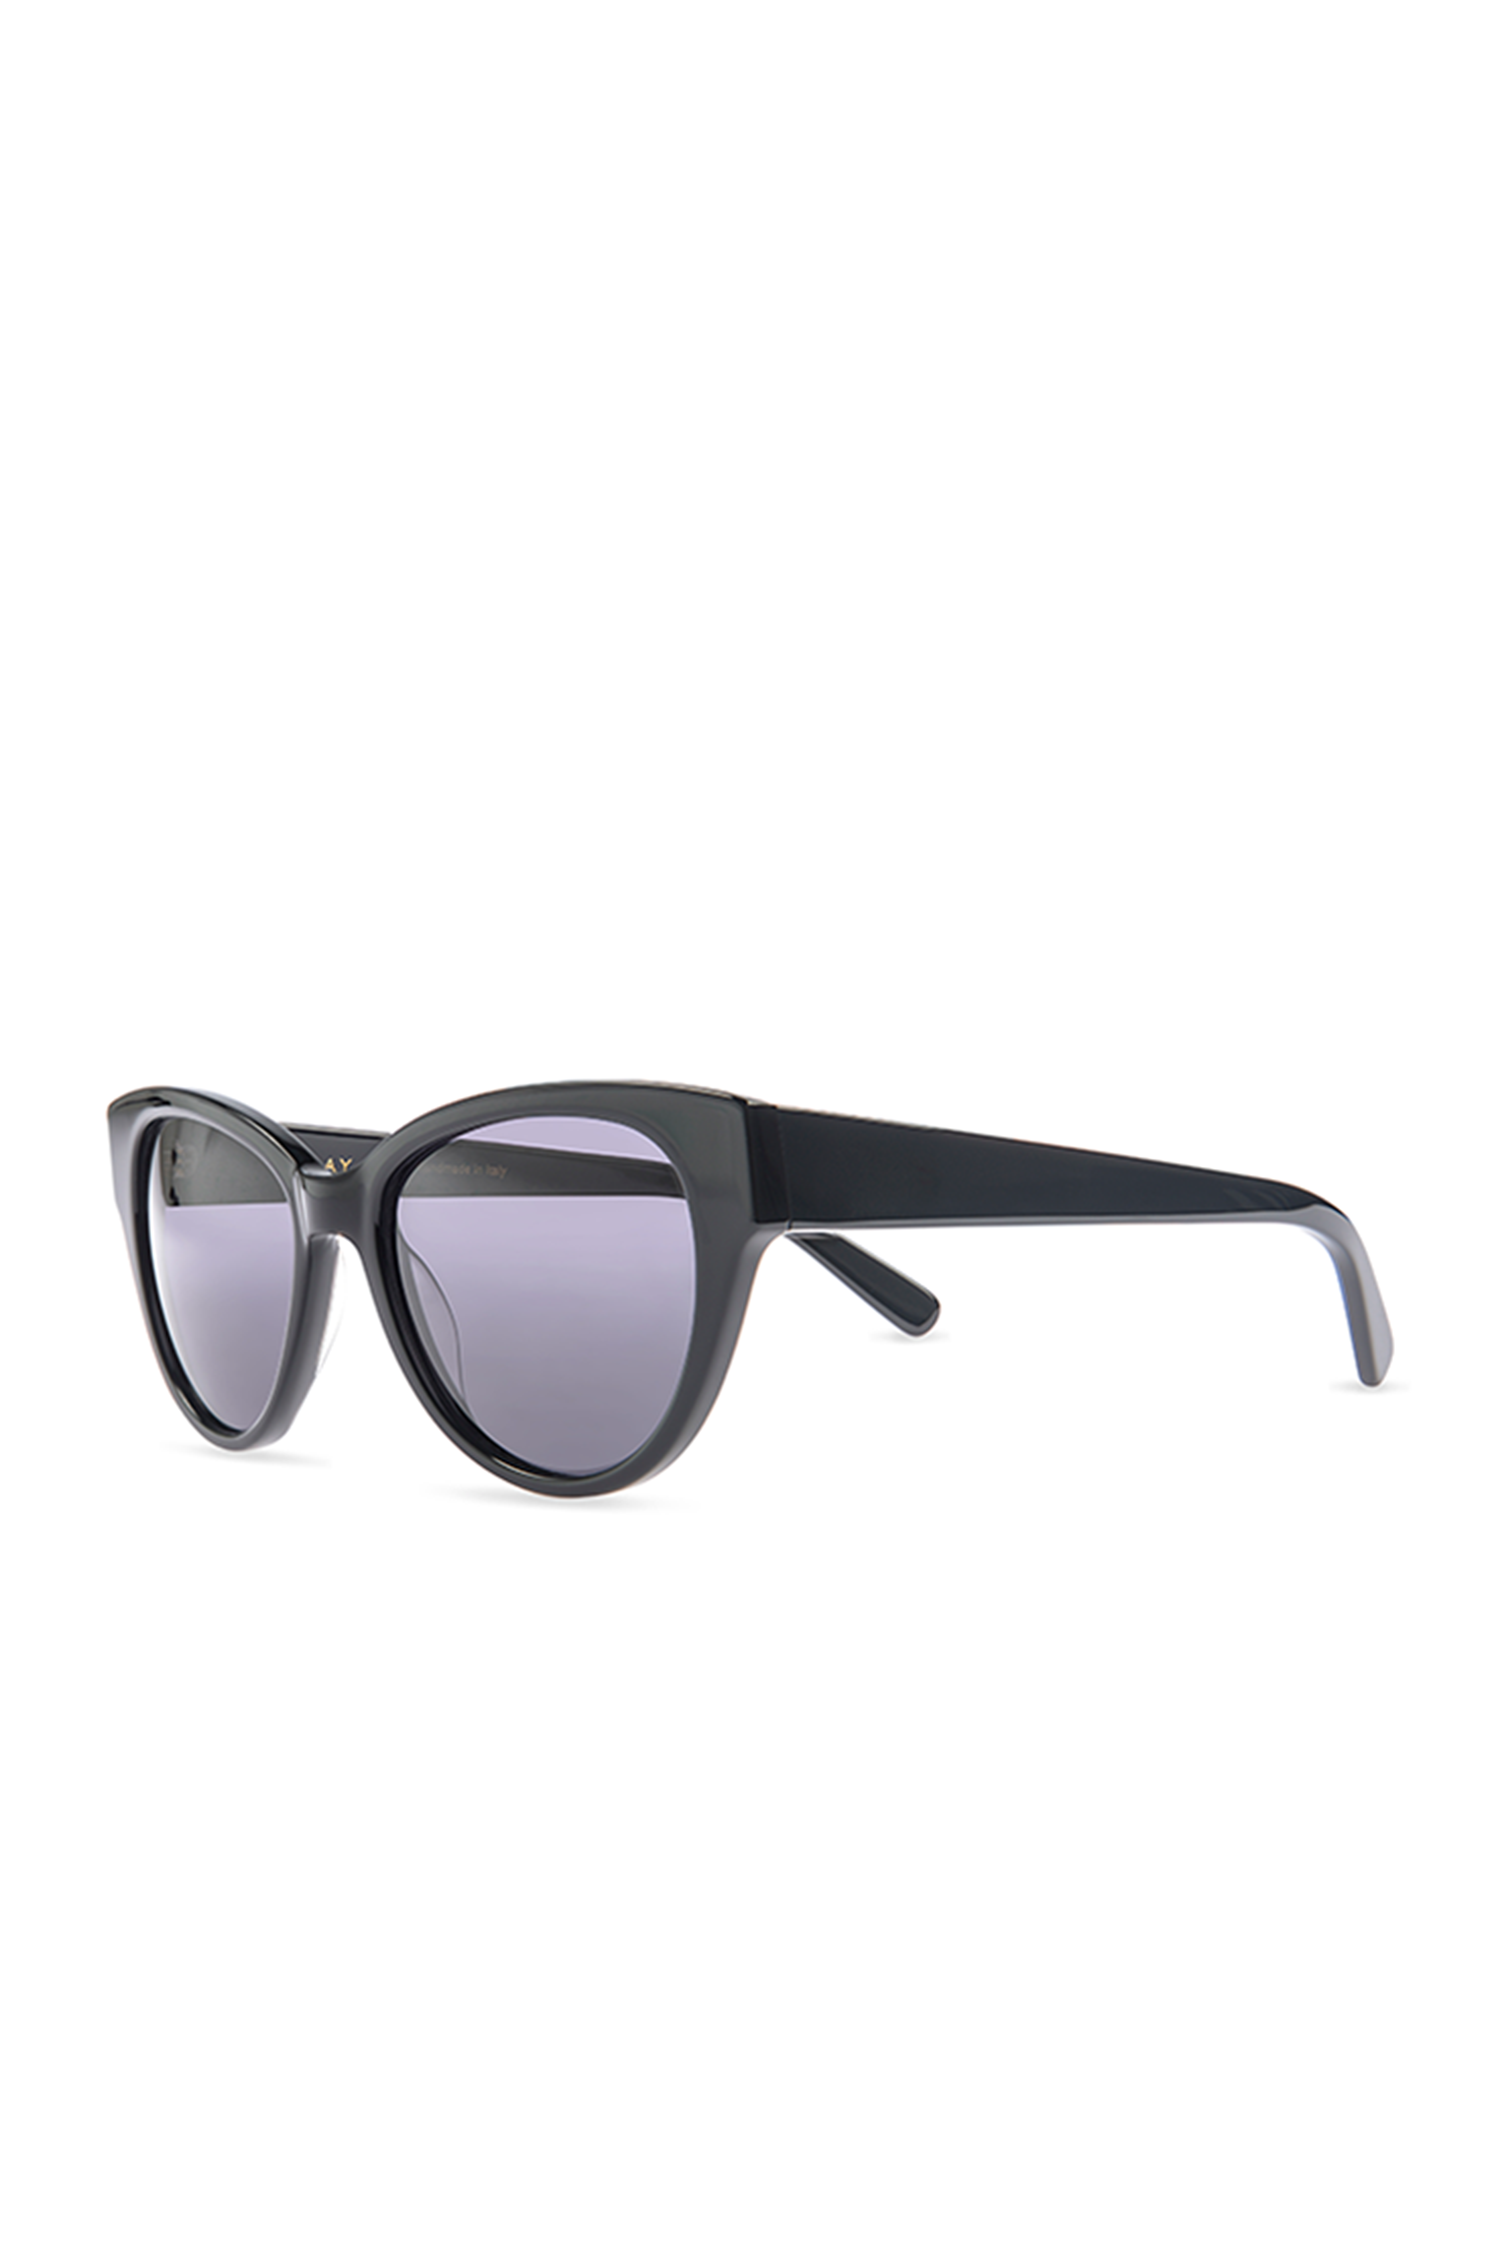 Henrietta - Black/ Grey  Lenses